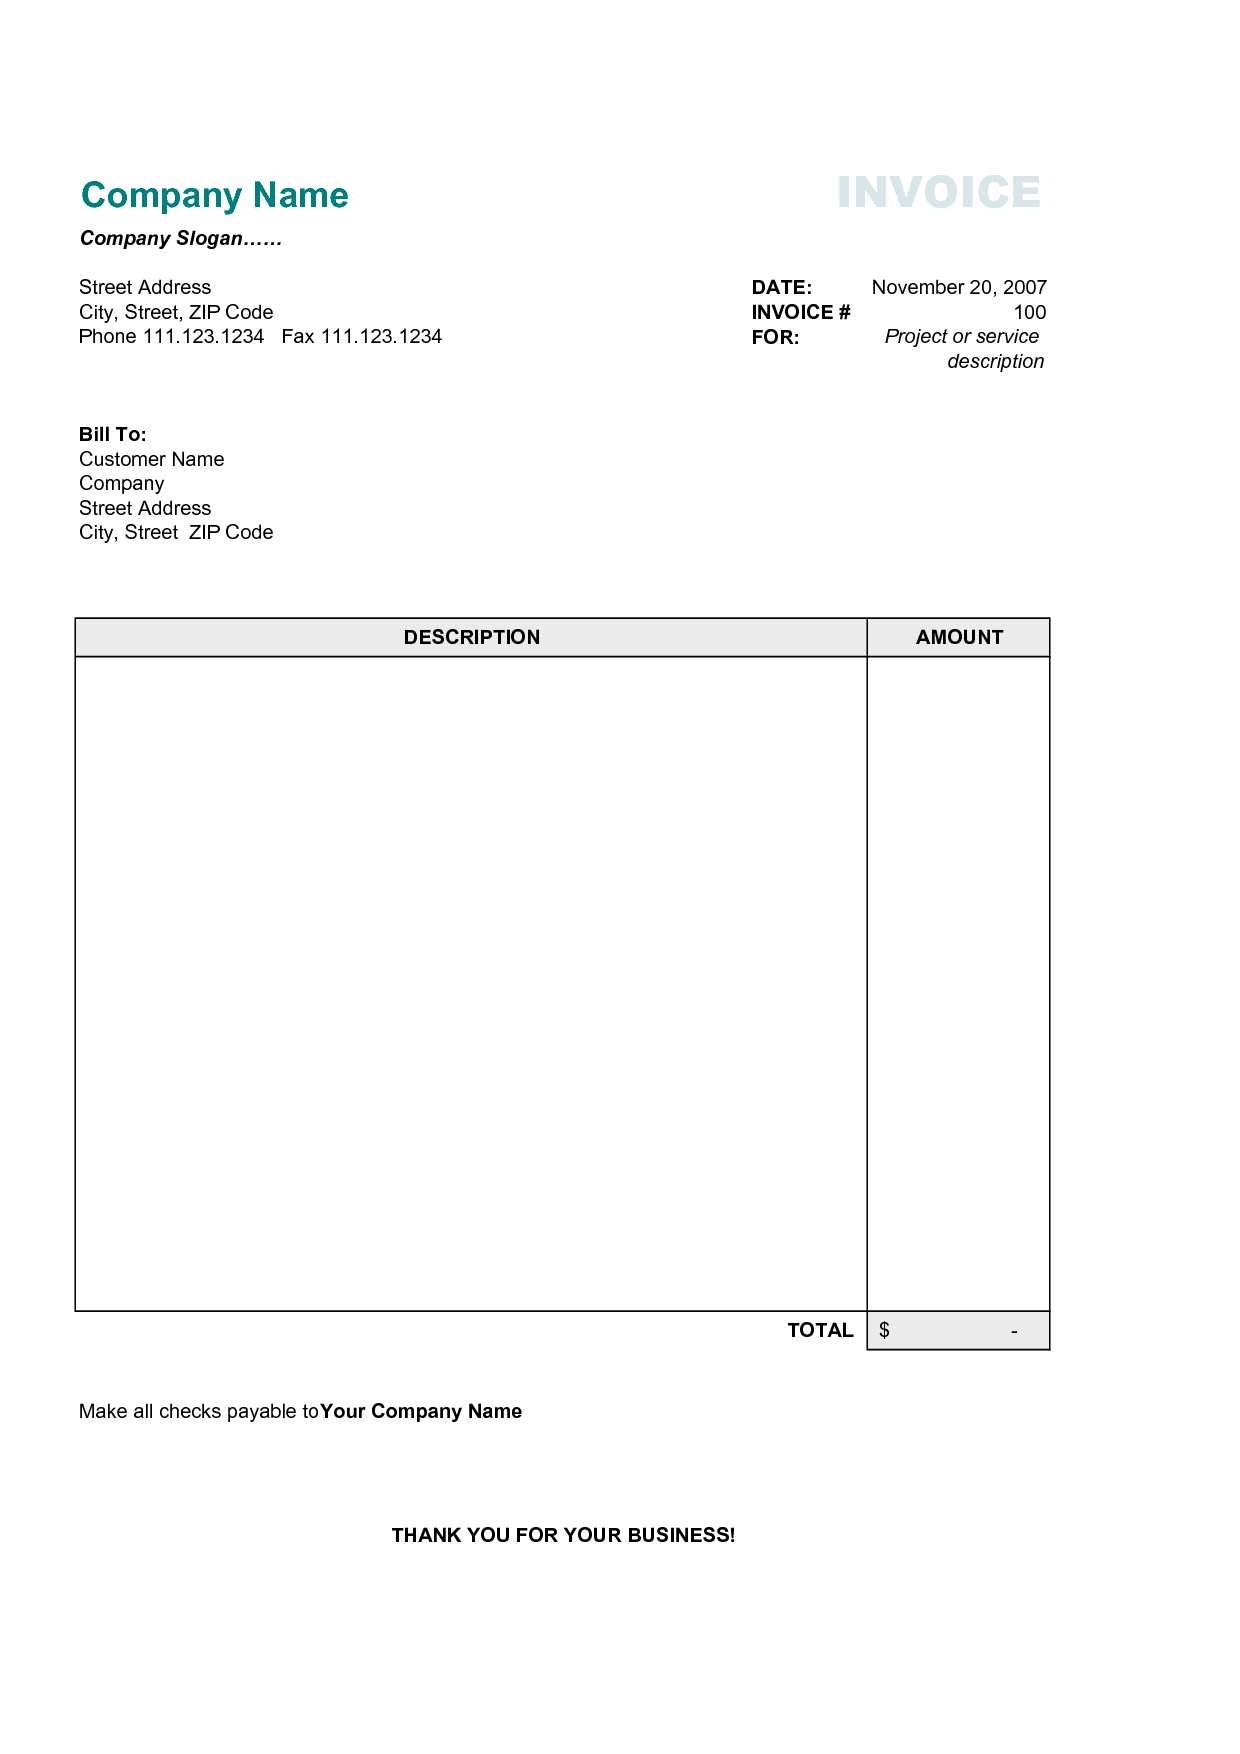 Free Sample Invoice Templates and Invoice Template Free Printable Animal Caretaker Cover Letter